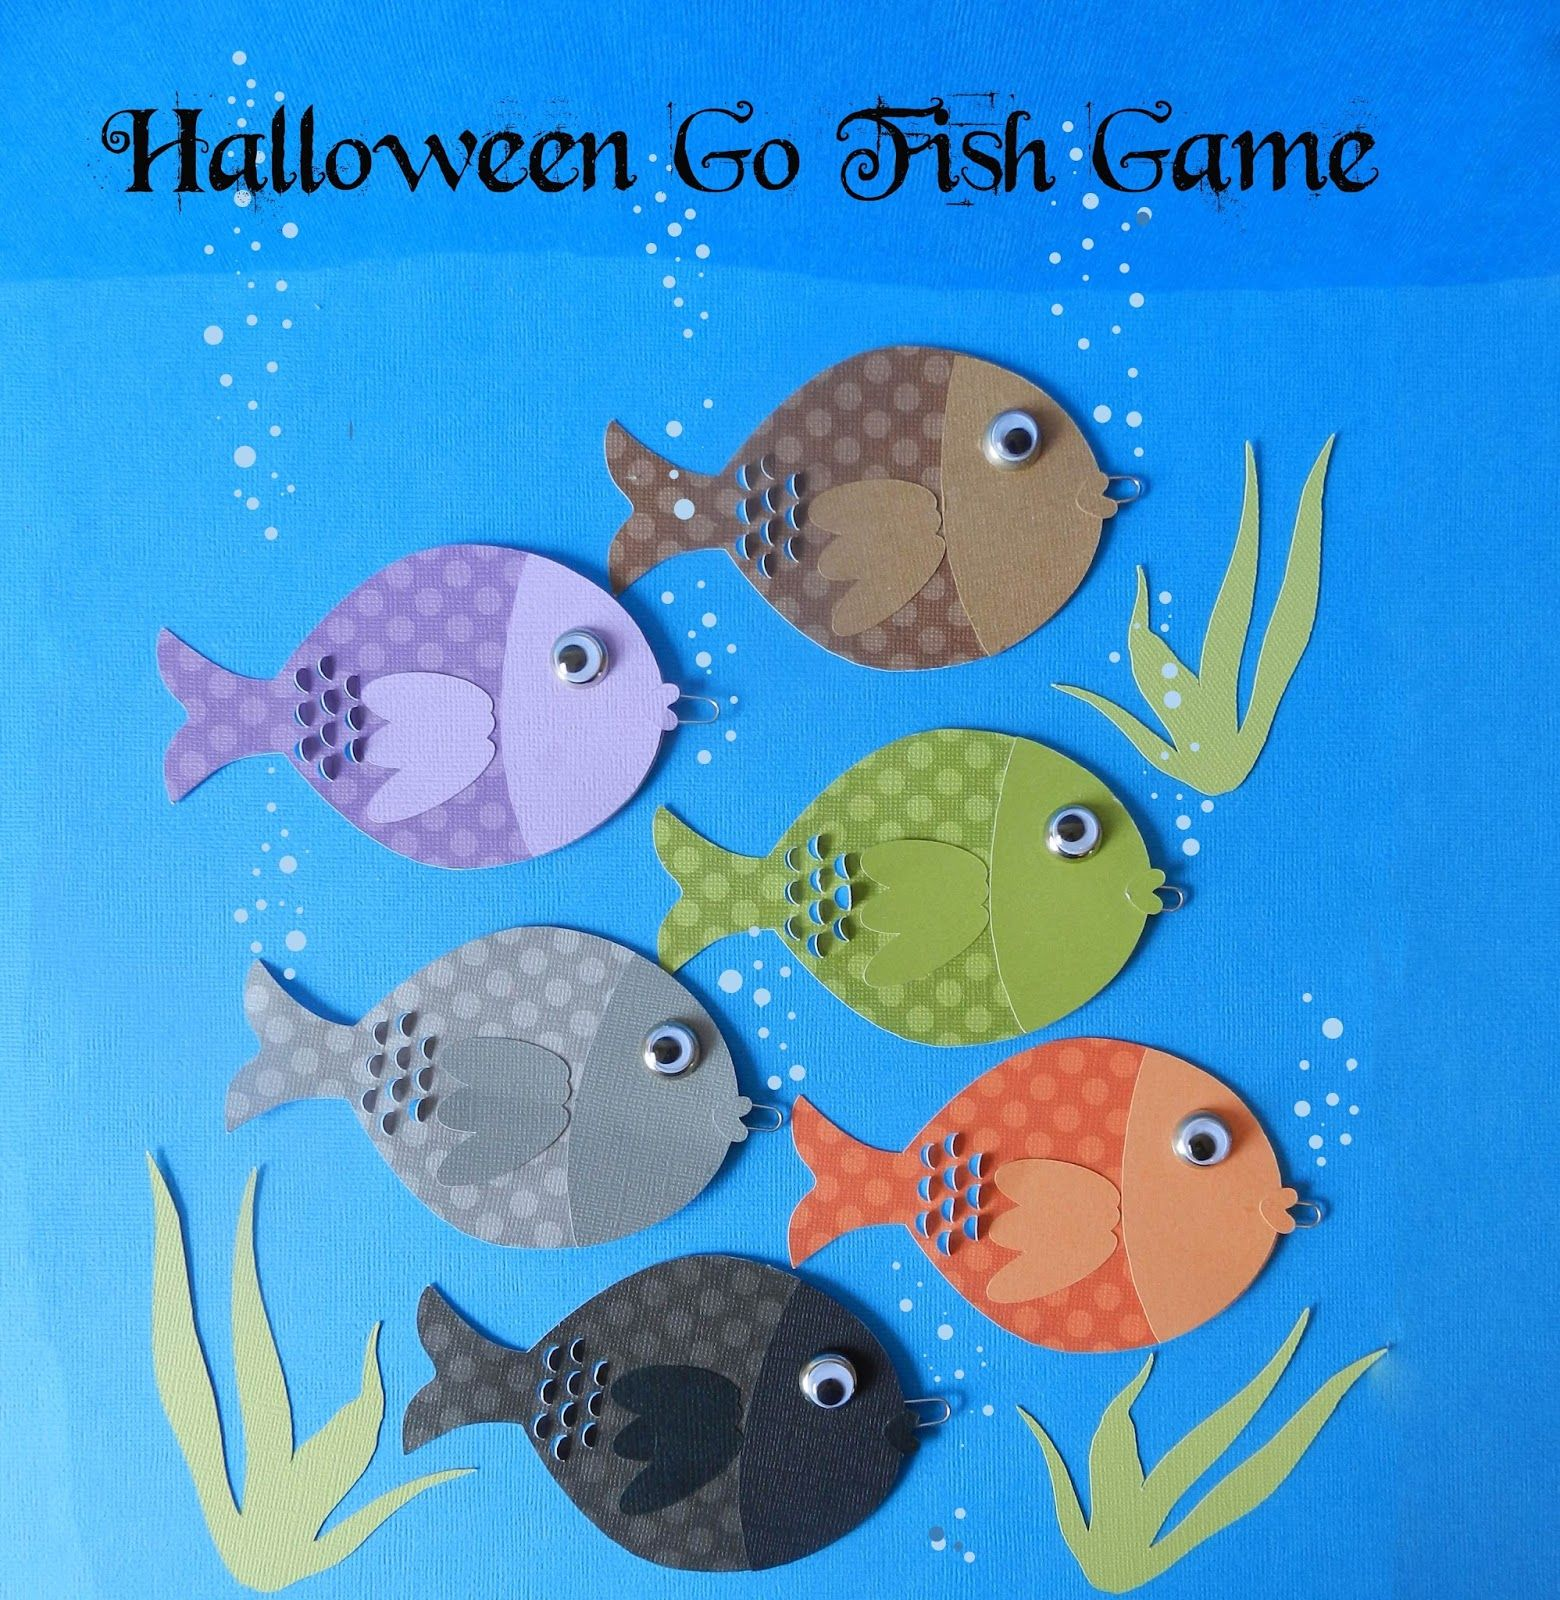 check out this halloween go fish game fun for classroom parties home church - Halloween Games For Kids Party At School